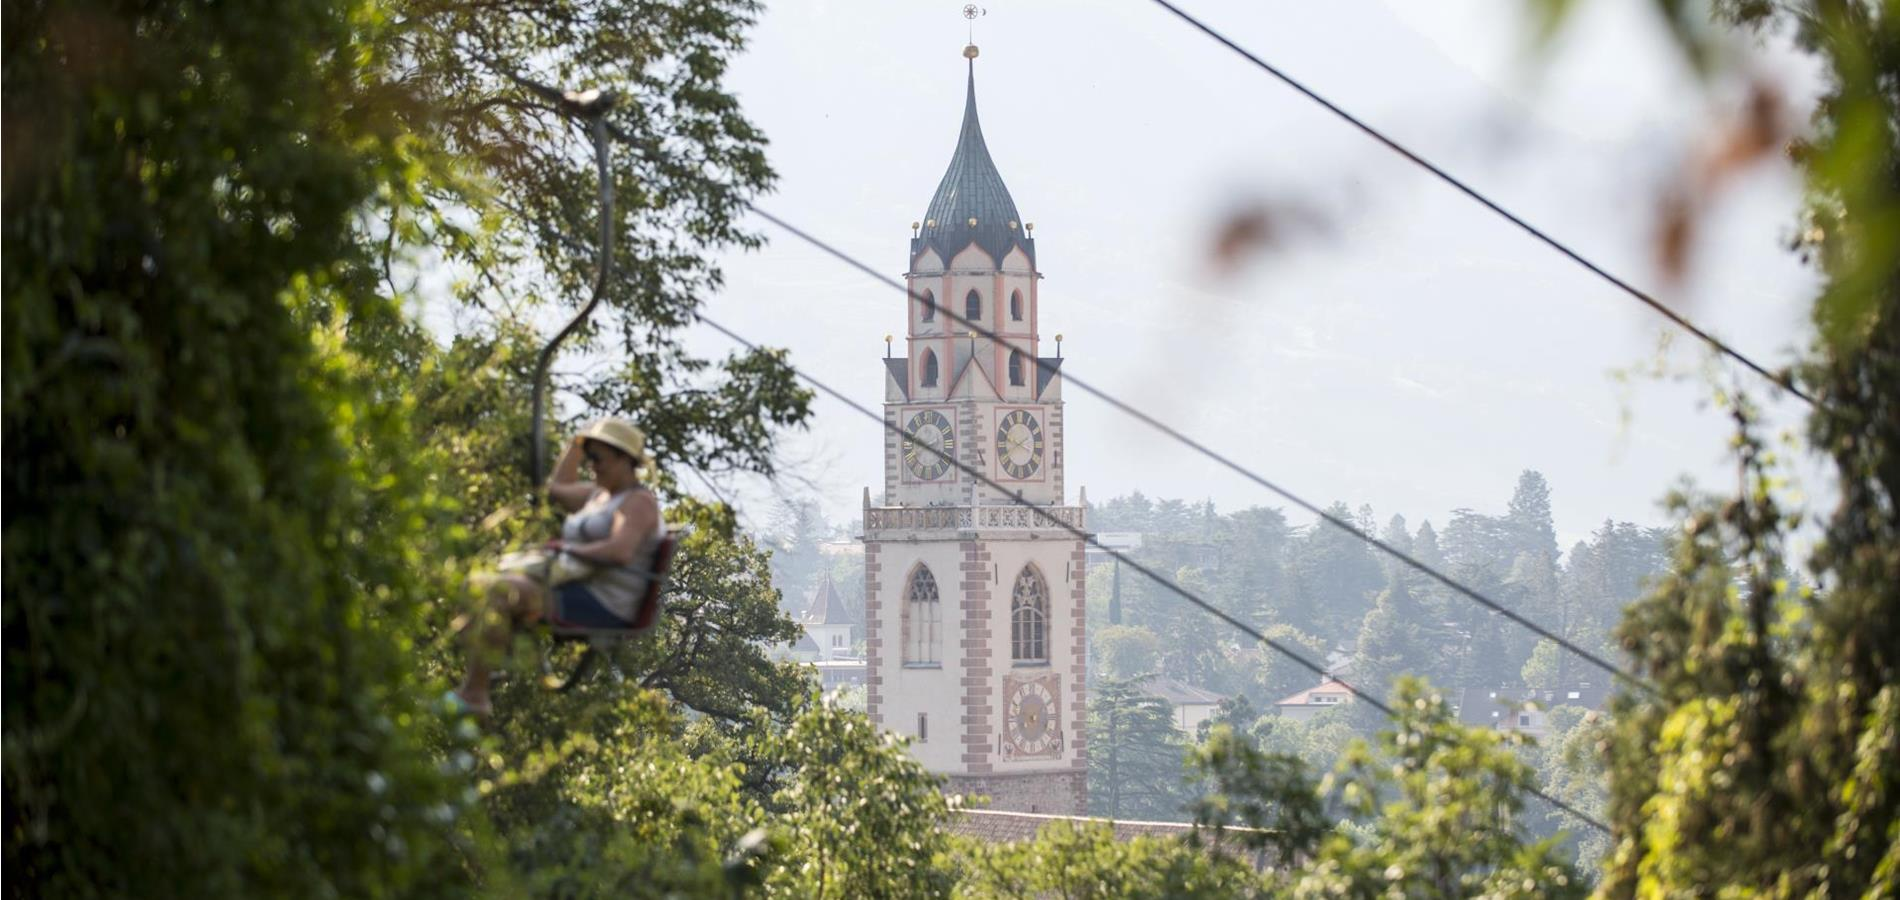 Cable Cars and Chairlifts in Merano